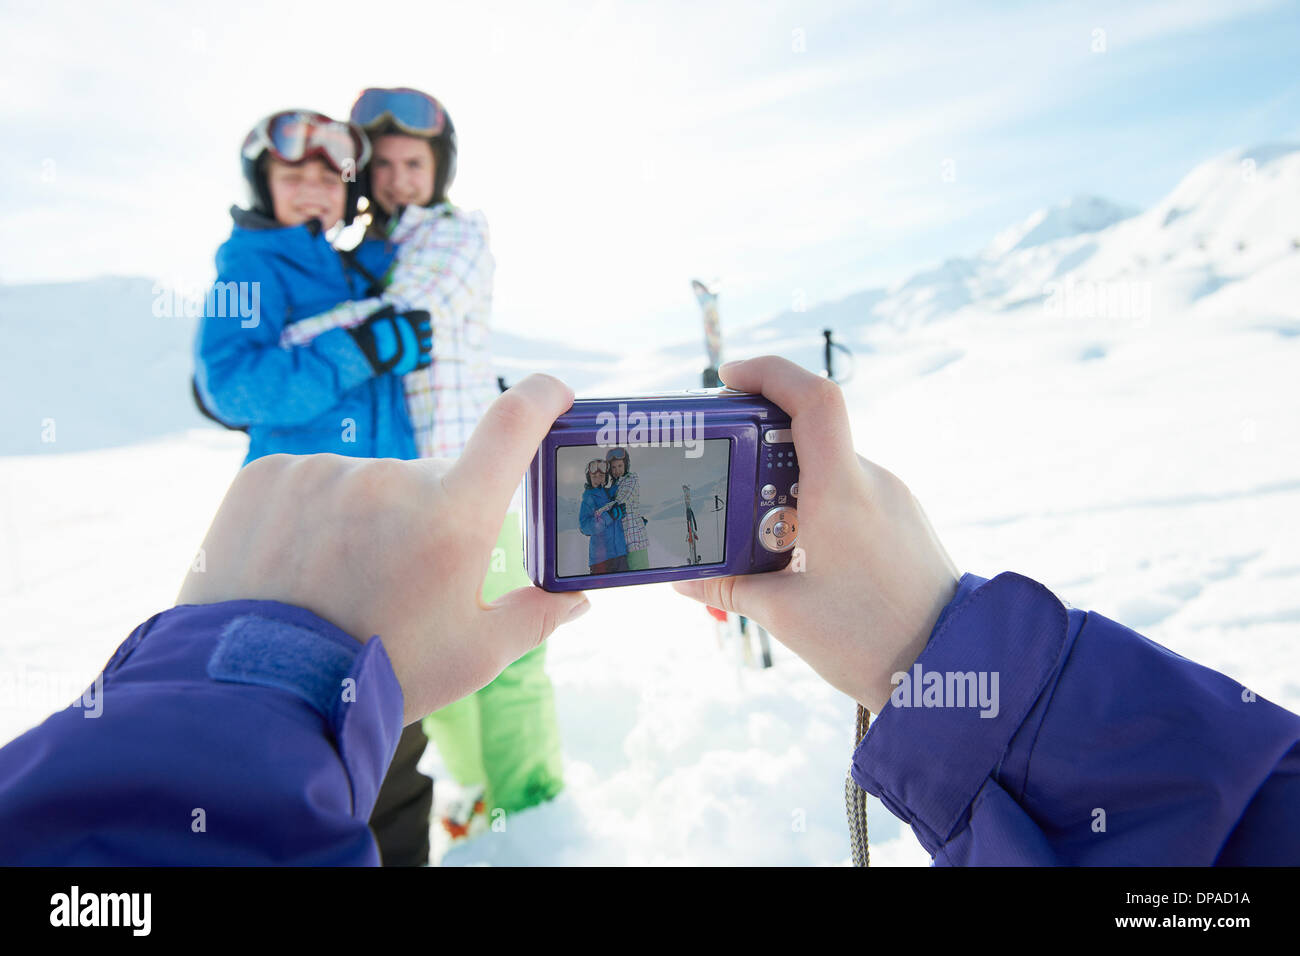 Sister photographing siblings in snow, Les Arcs, Haute-Savoie, France Stock Photo